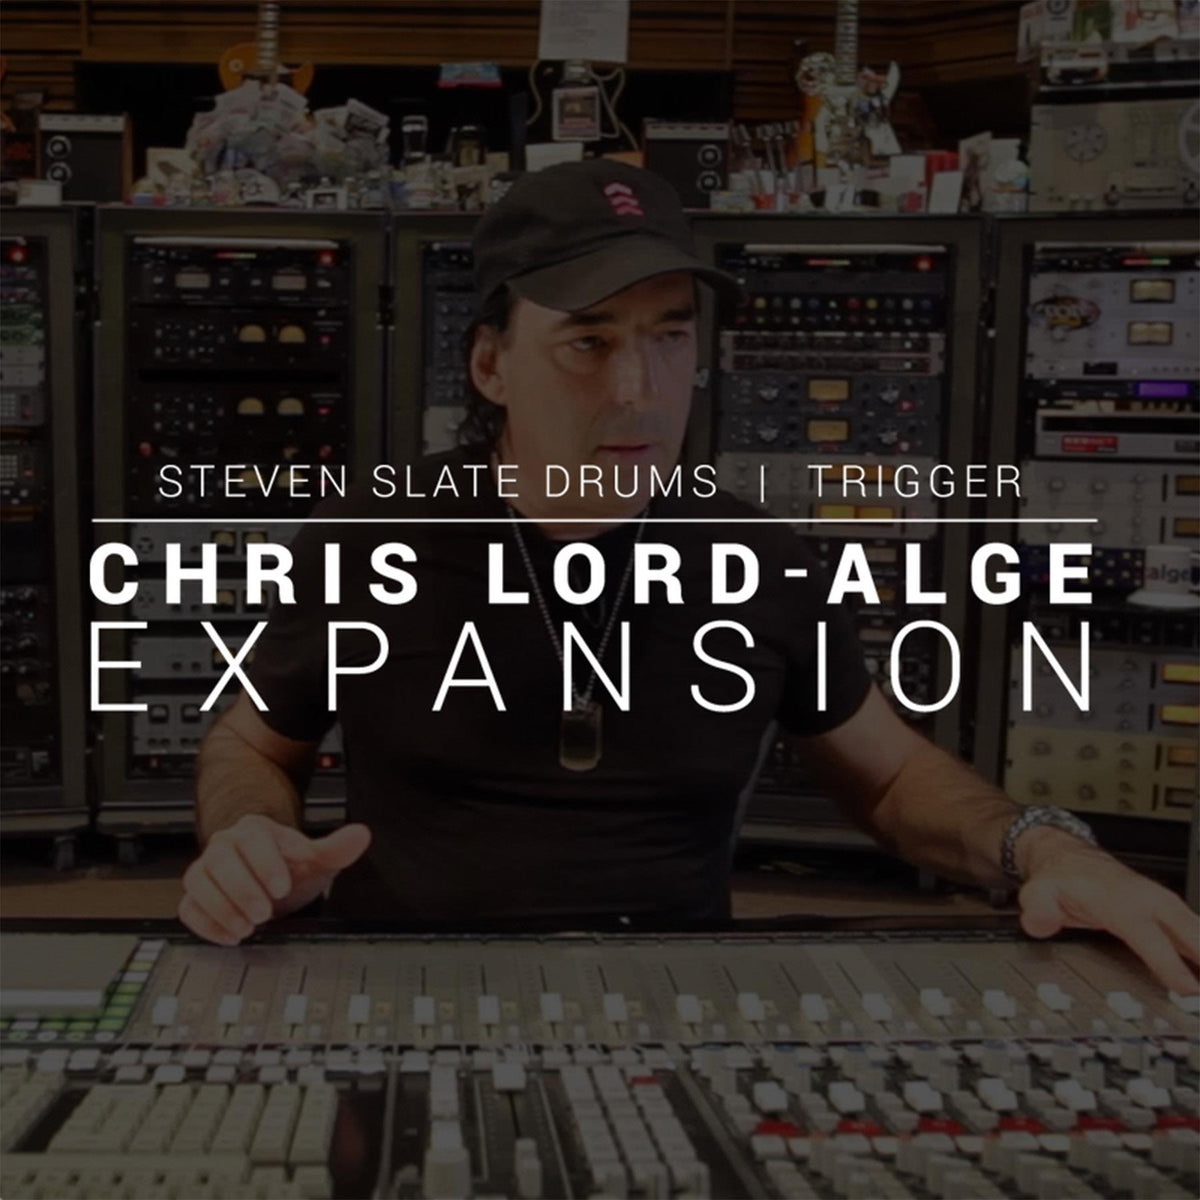 Steven Slate Chris Lord-Alge (CLA) Expansion for SSD (Digital Download)